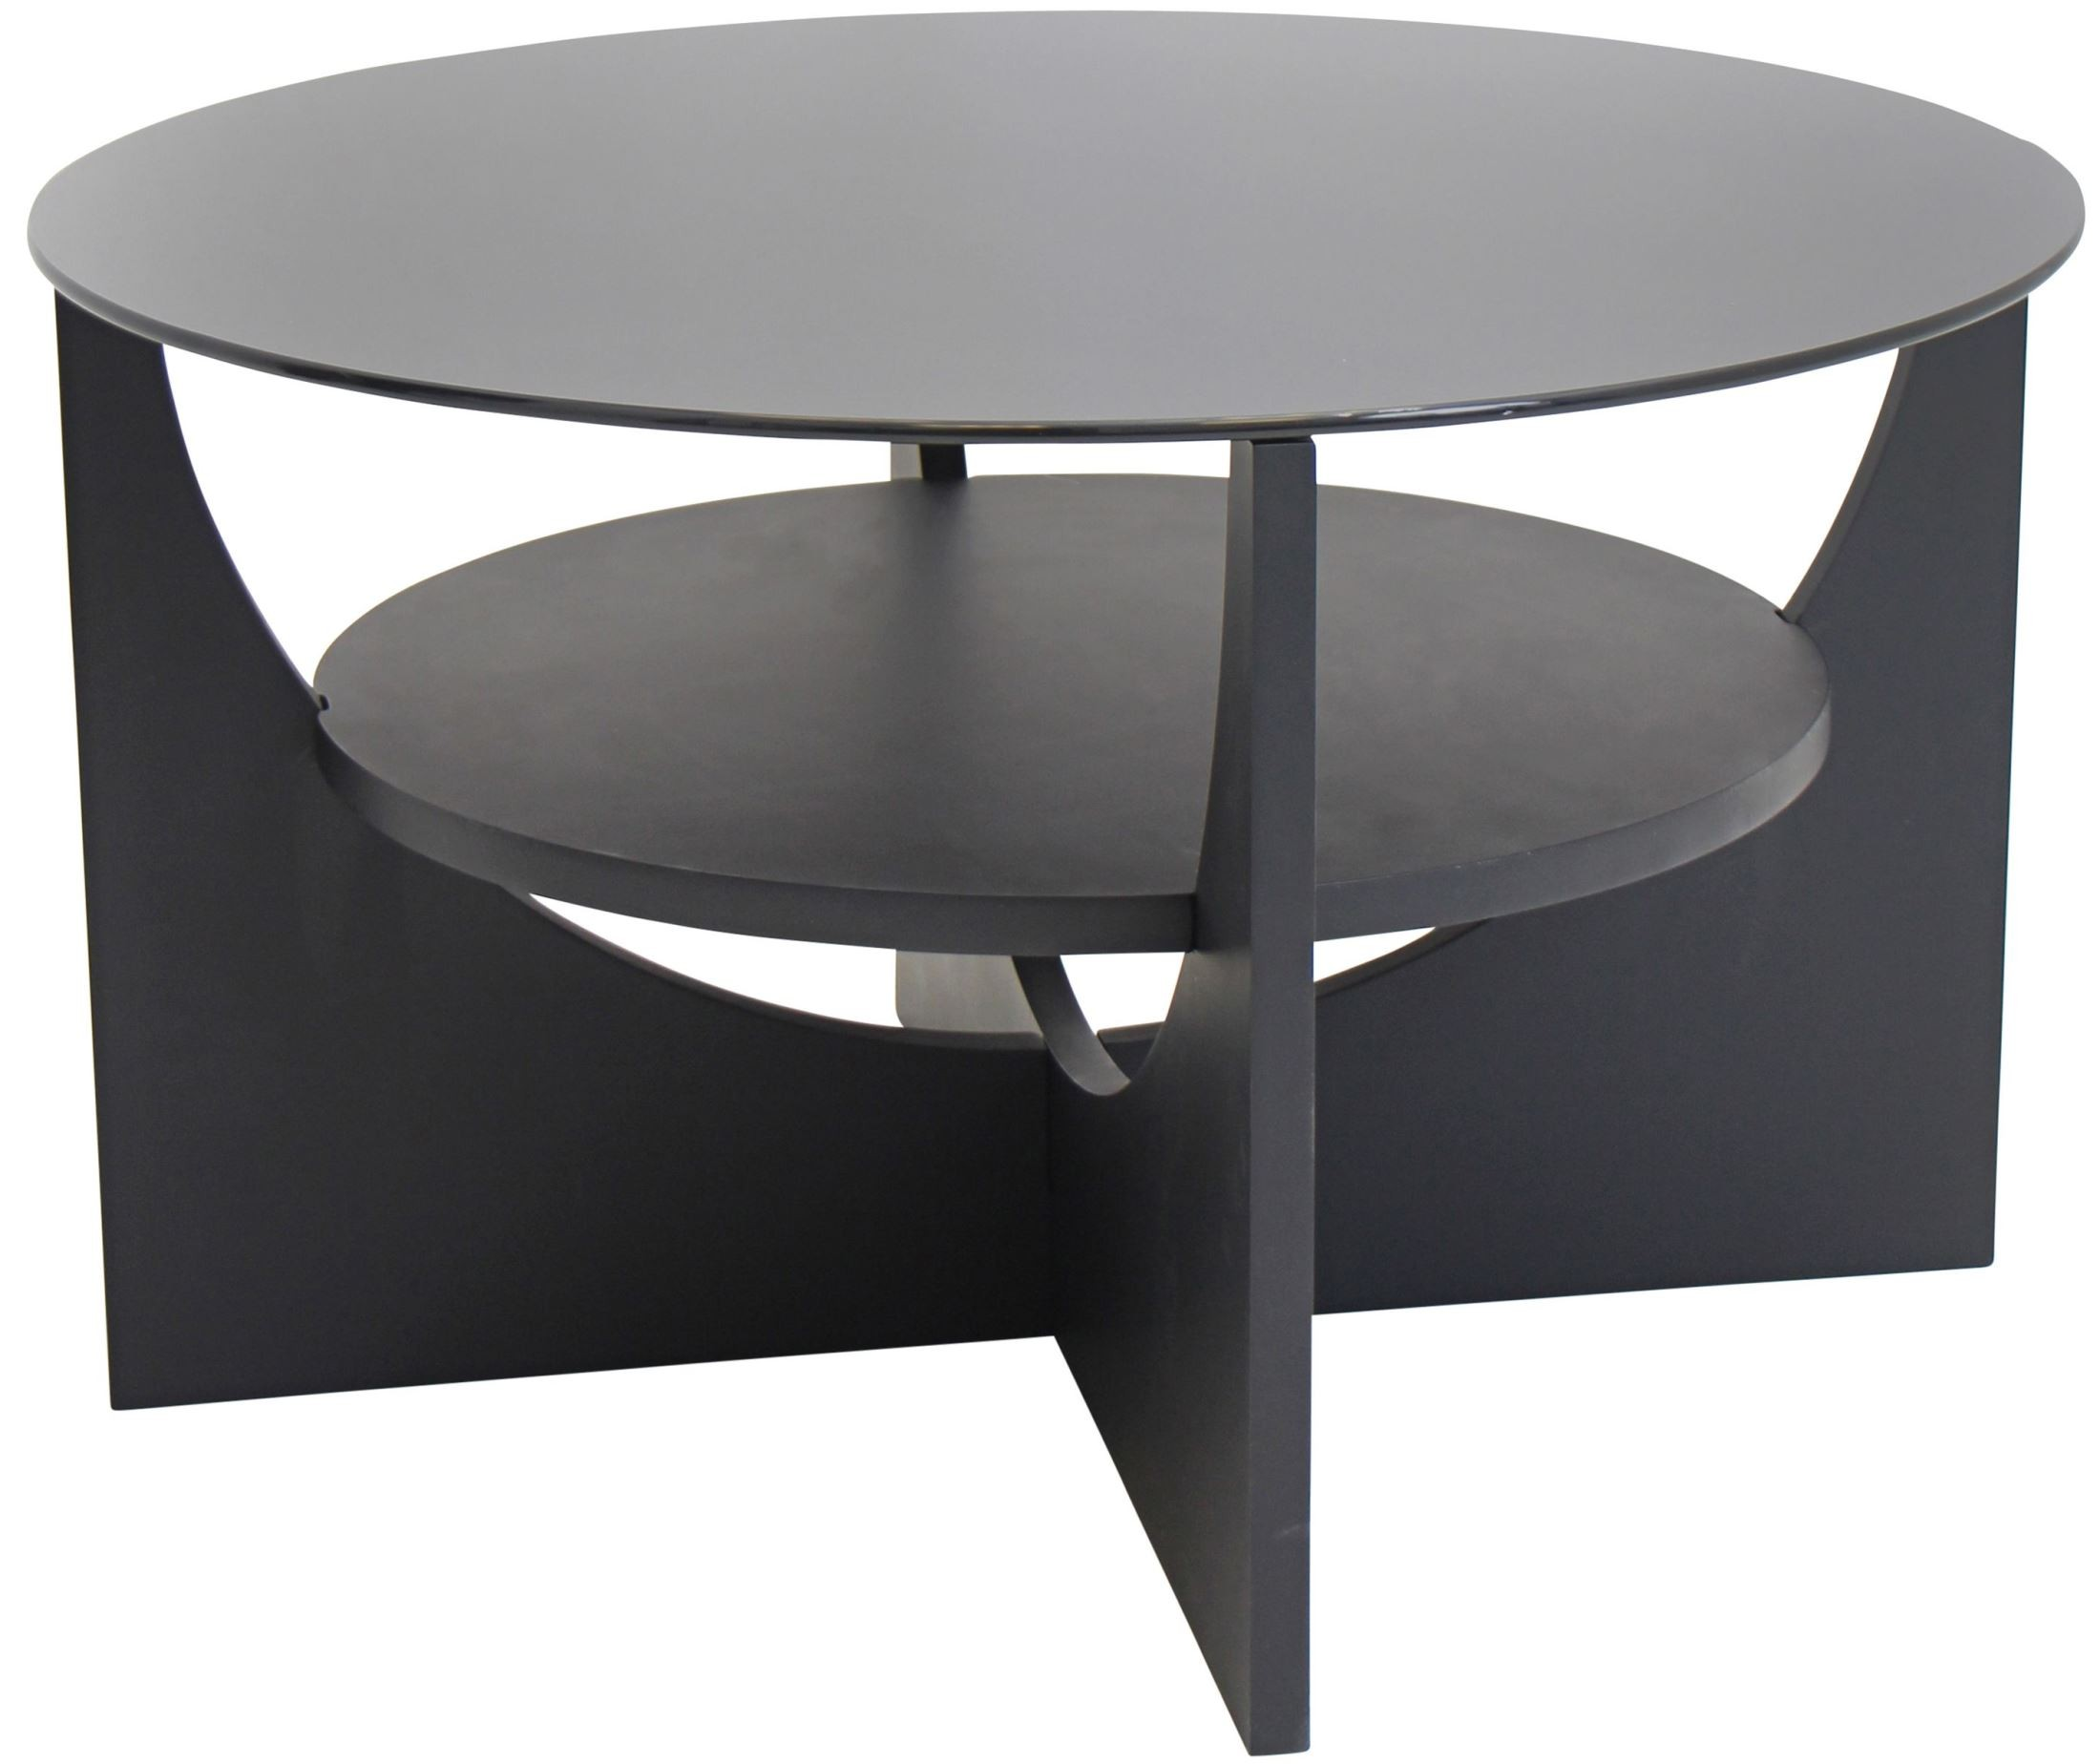 u shaped wenge coffee table from lumisource (tbctu wng)  coleman  - u shaped wenge coffee table